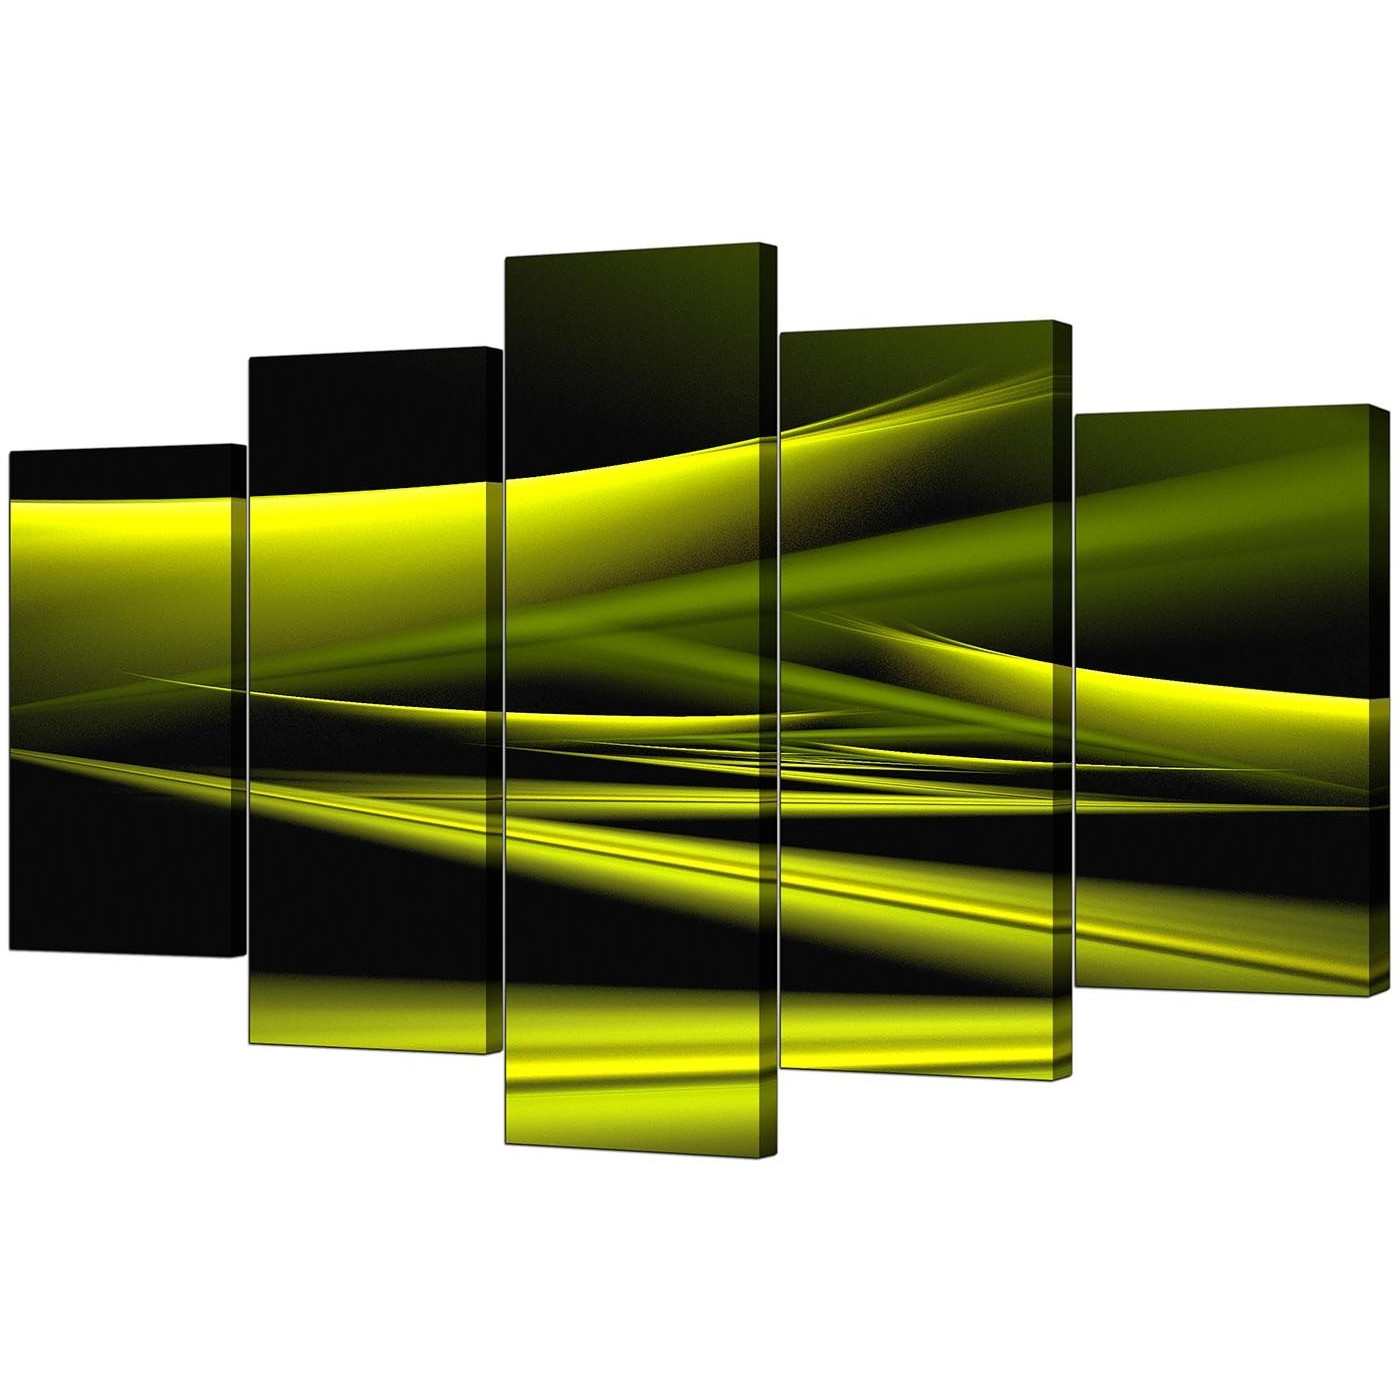 Extra Large Green Abstract Canvas Prints – 5 Piece Regarding Latest Large Green Wall Art (Gallery 3 of 15)